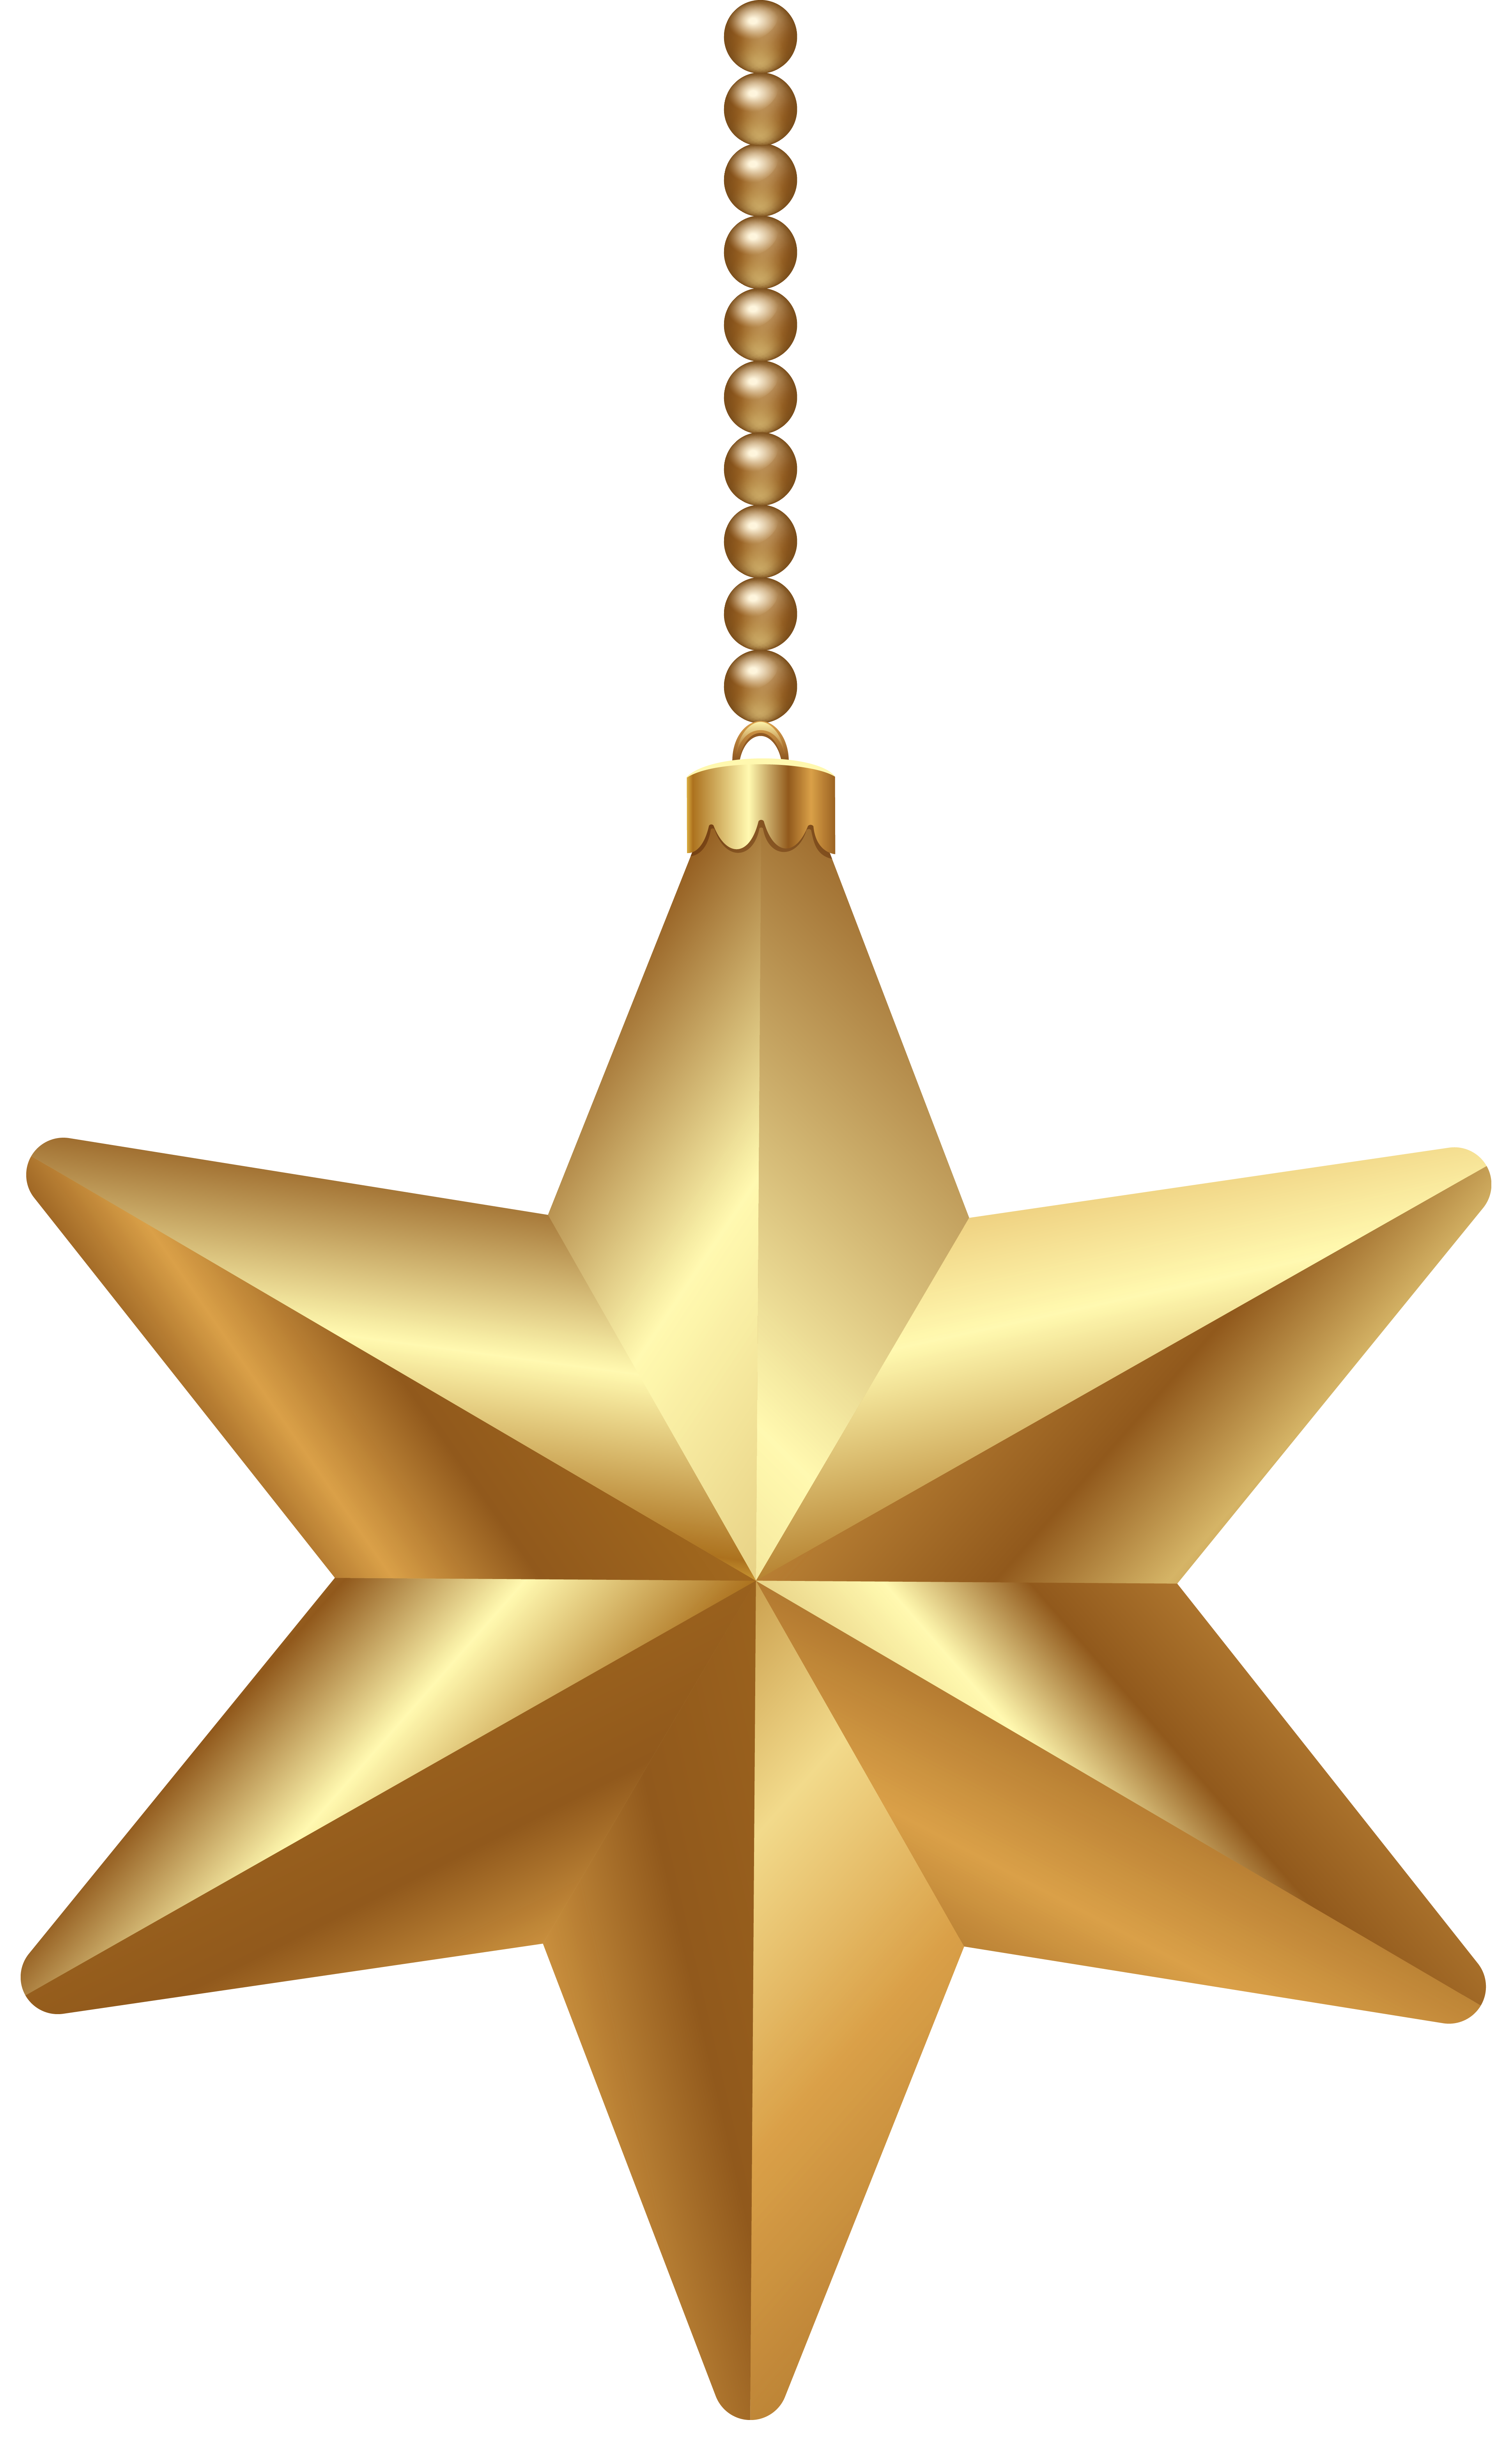 Free Christmas Stars Cliparts, Download Free Clip Art, Free Clip Art.